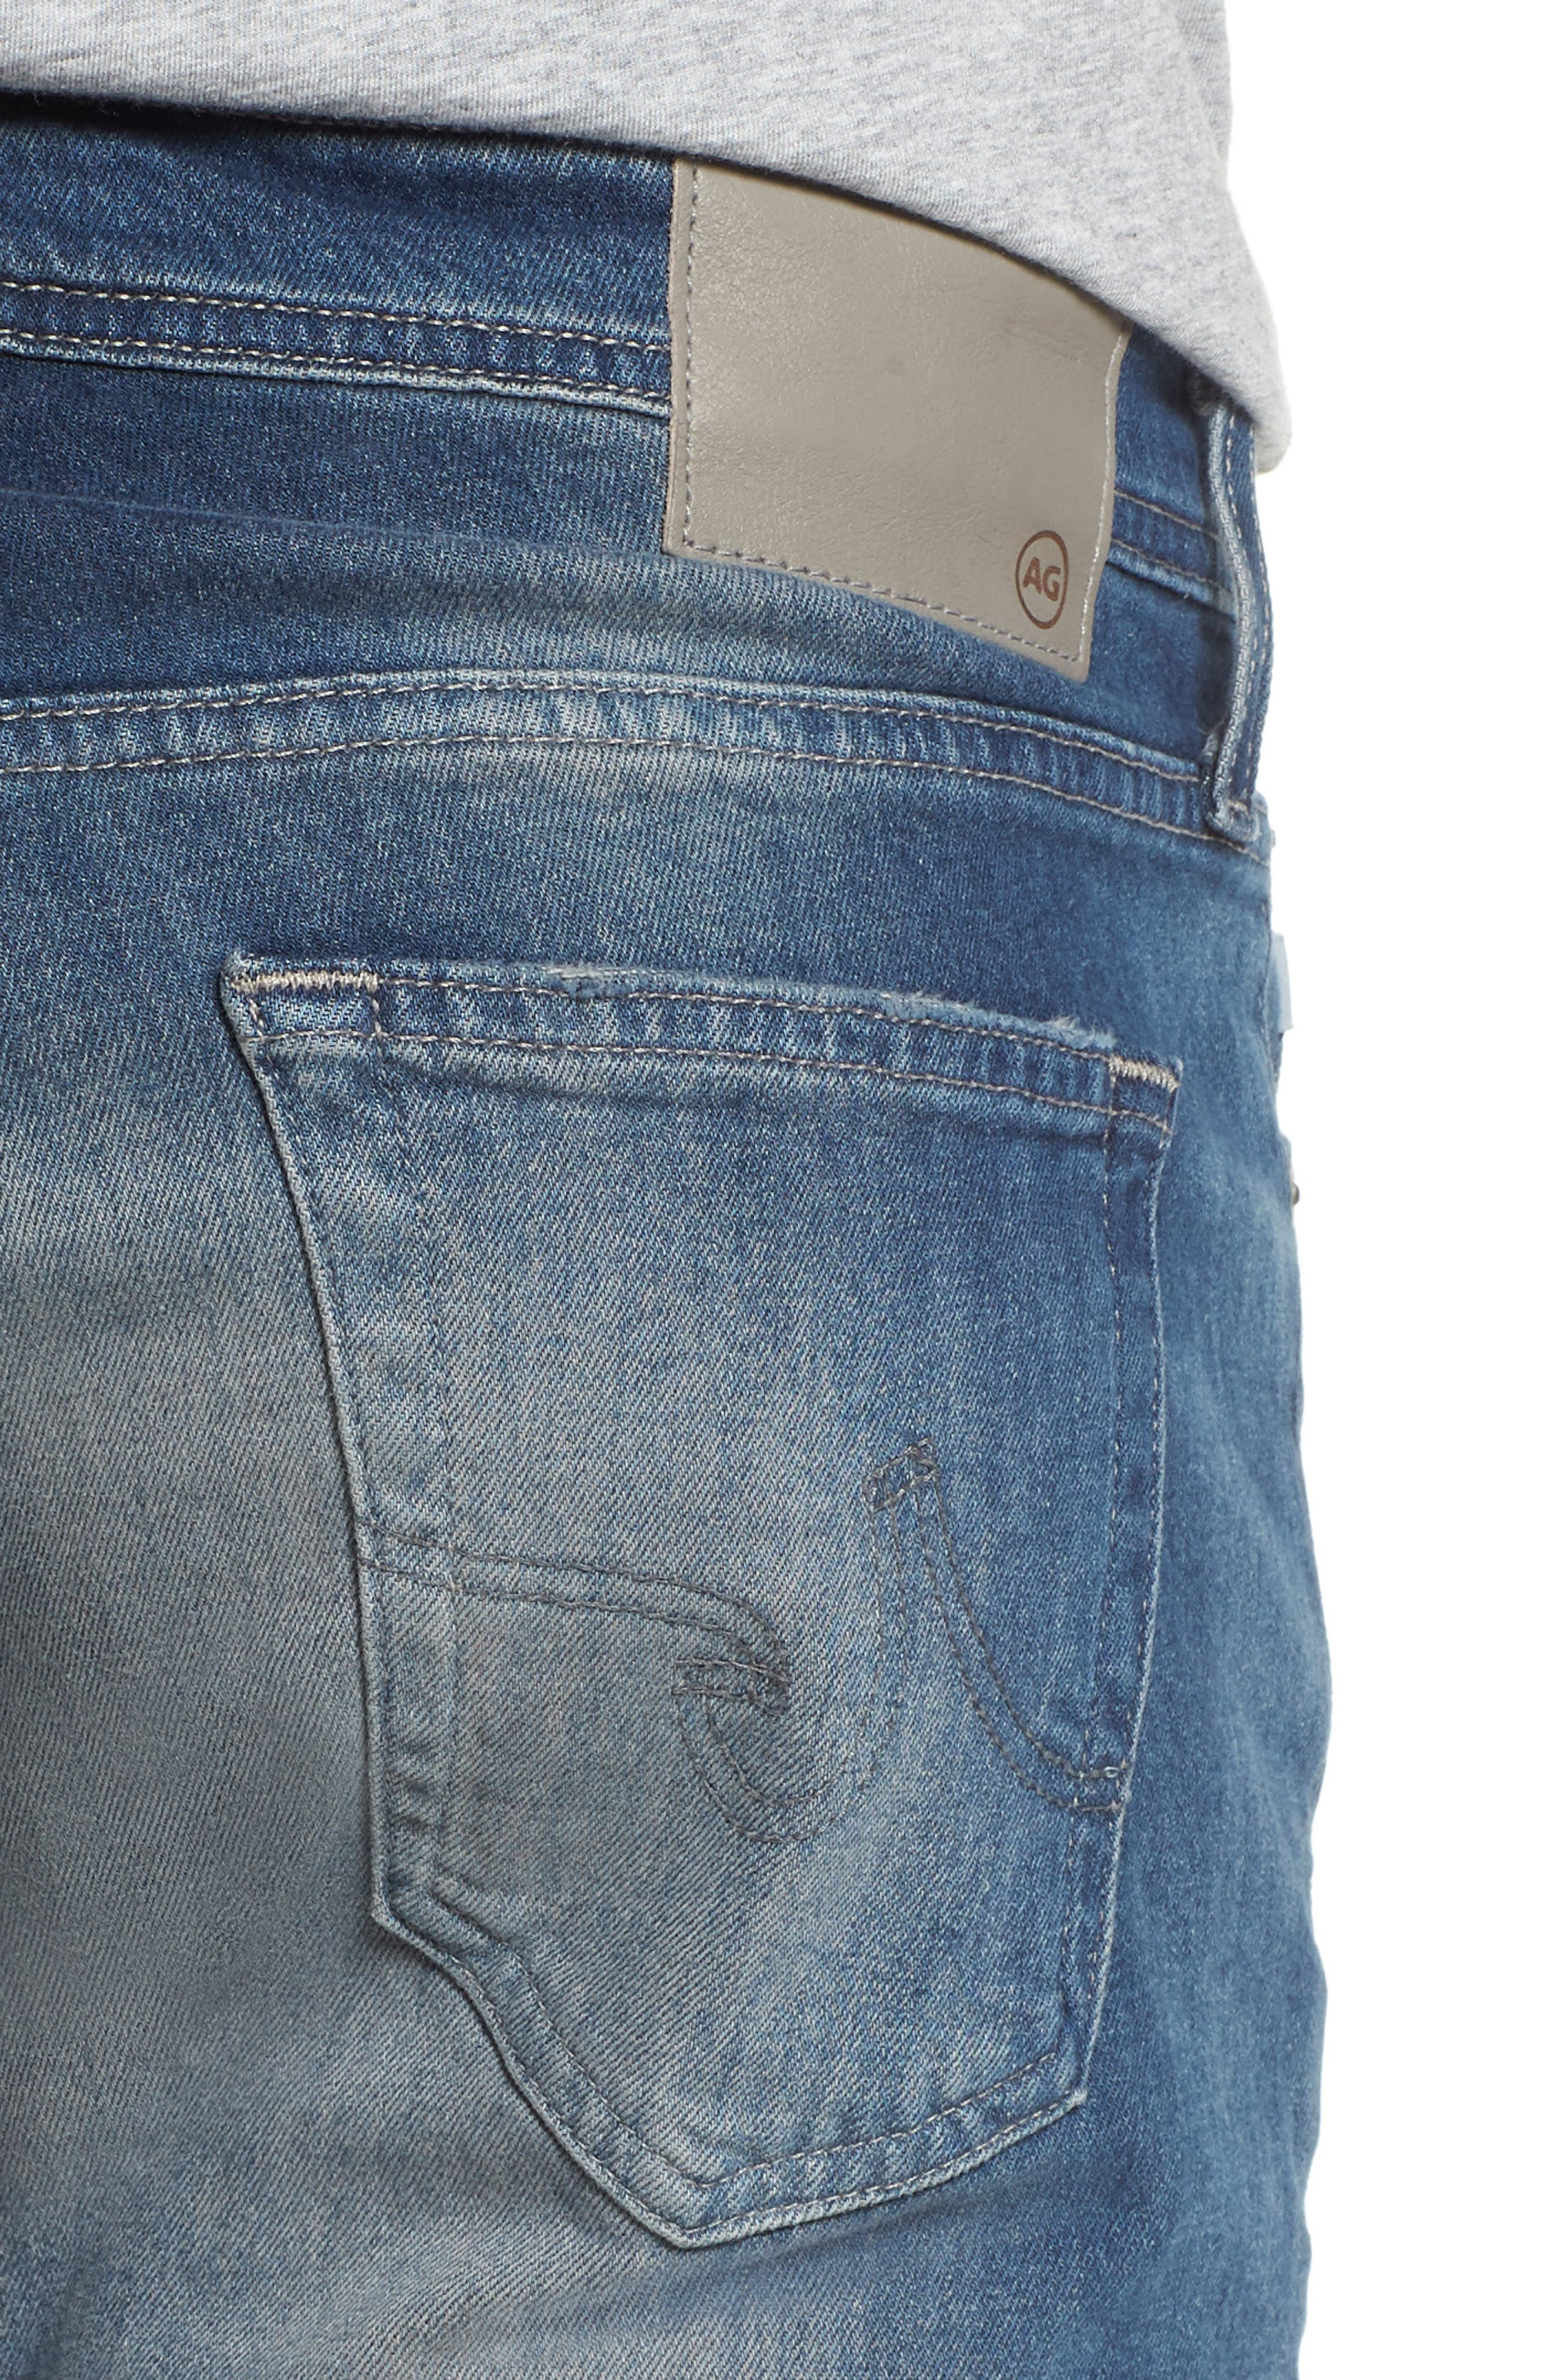 Dylan Skinny Fit Jeans,                             Alternate thumbnail 4, color,                             12 Years Off Ramp